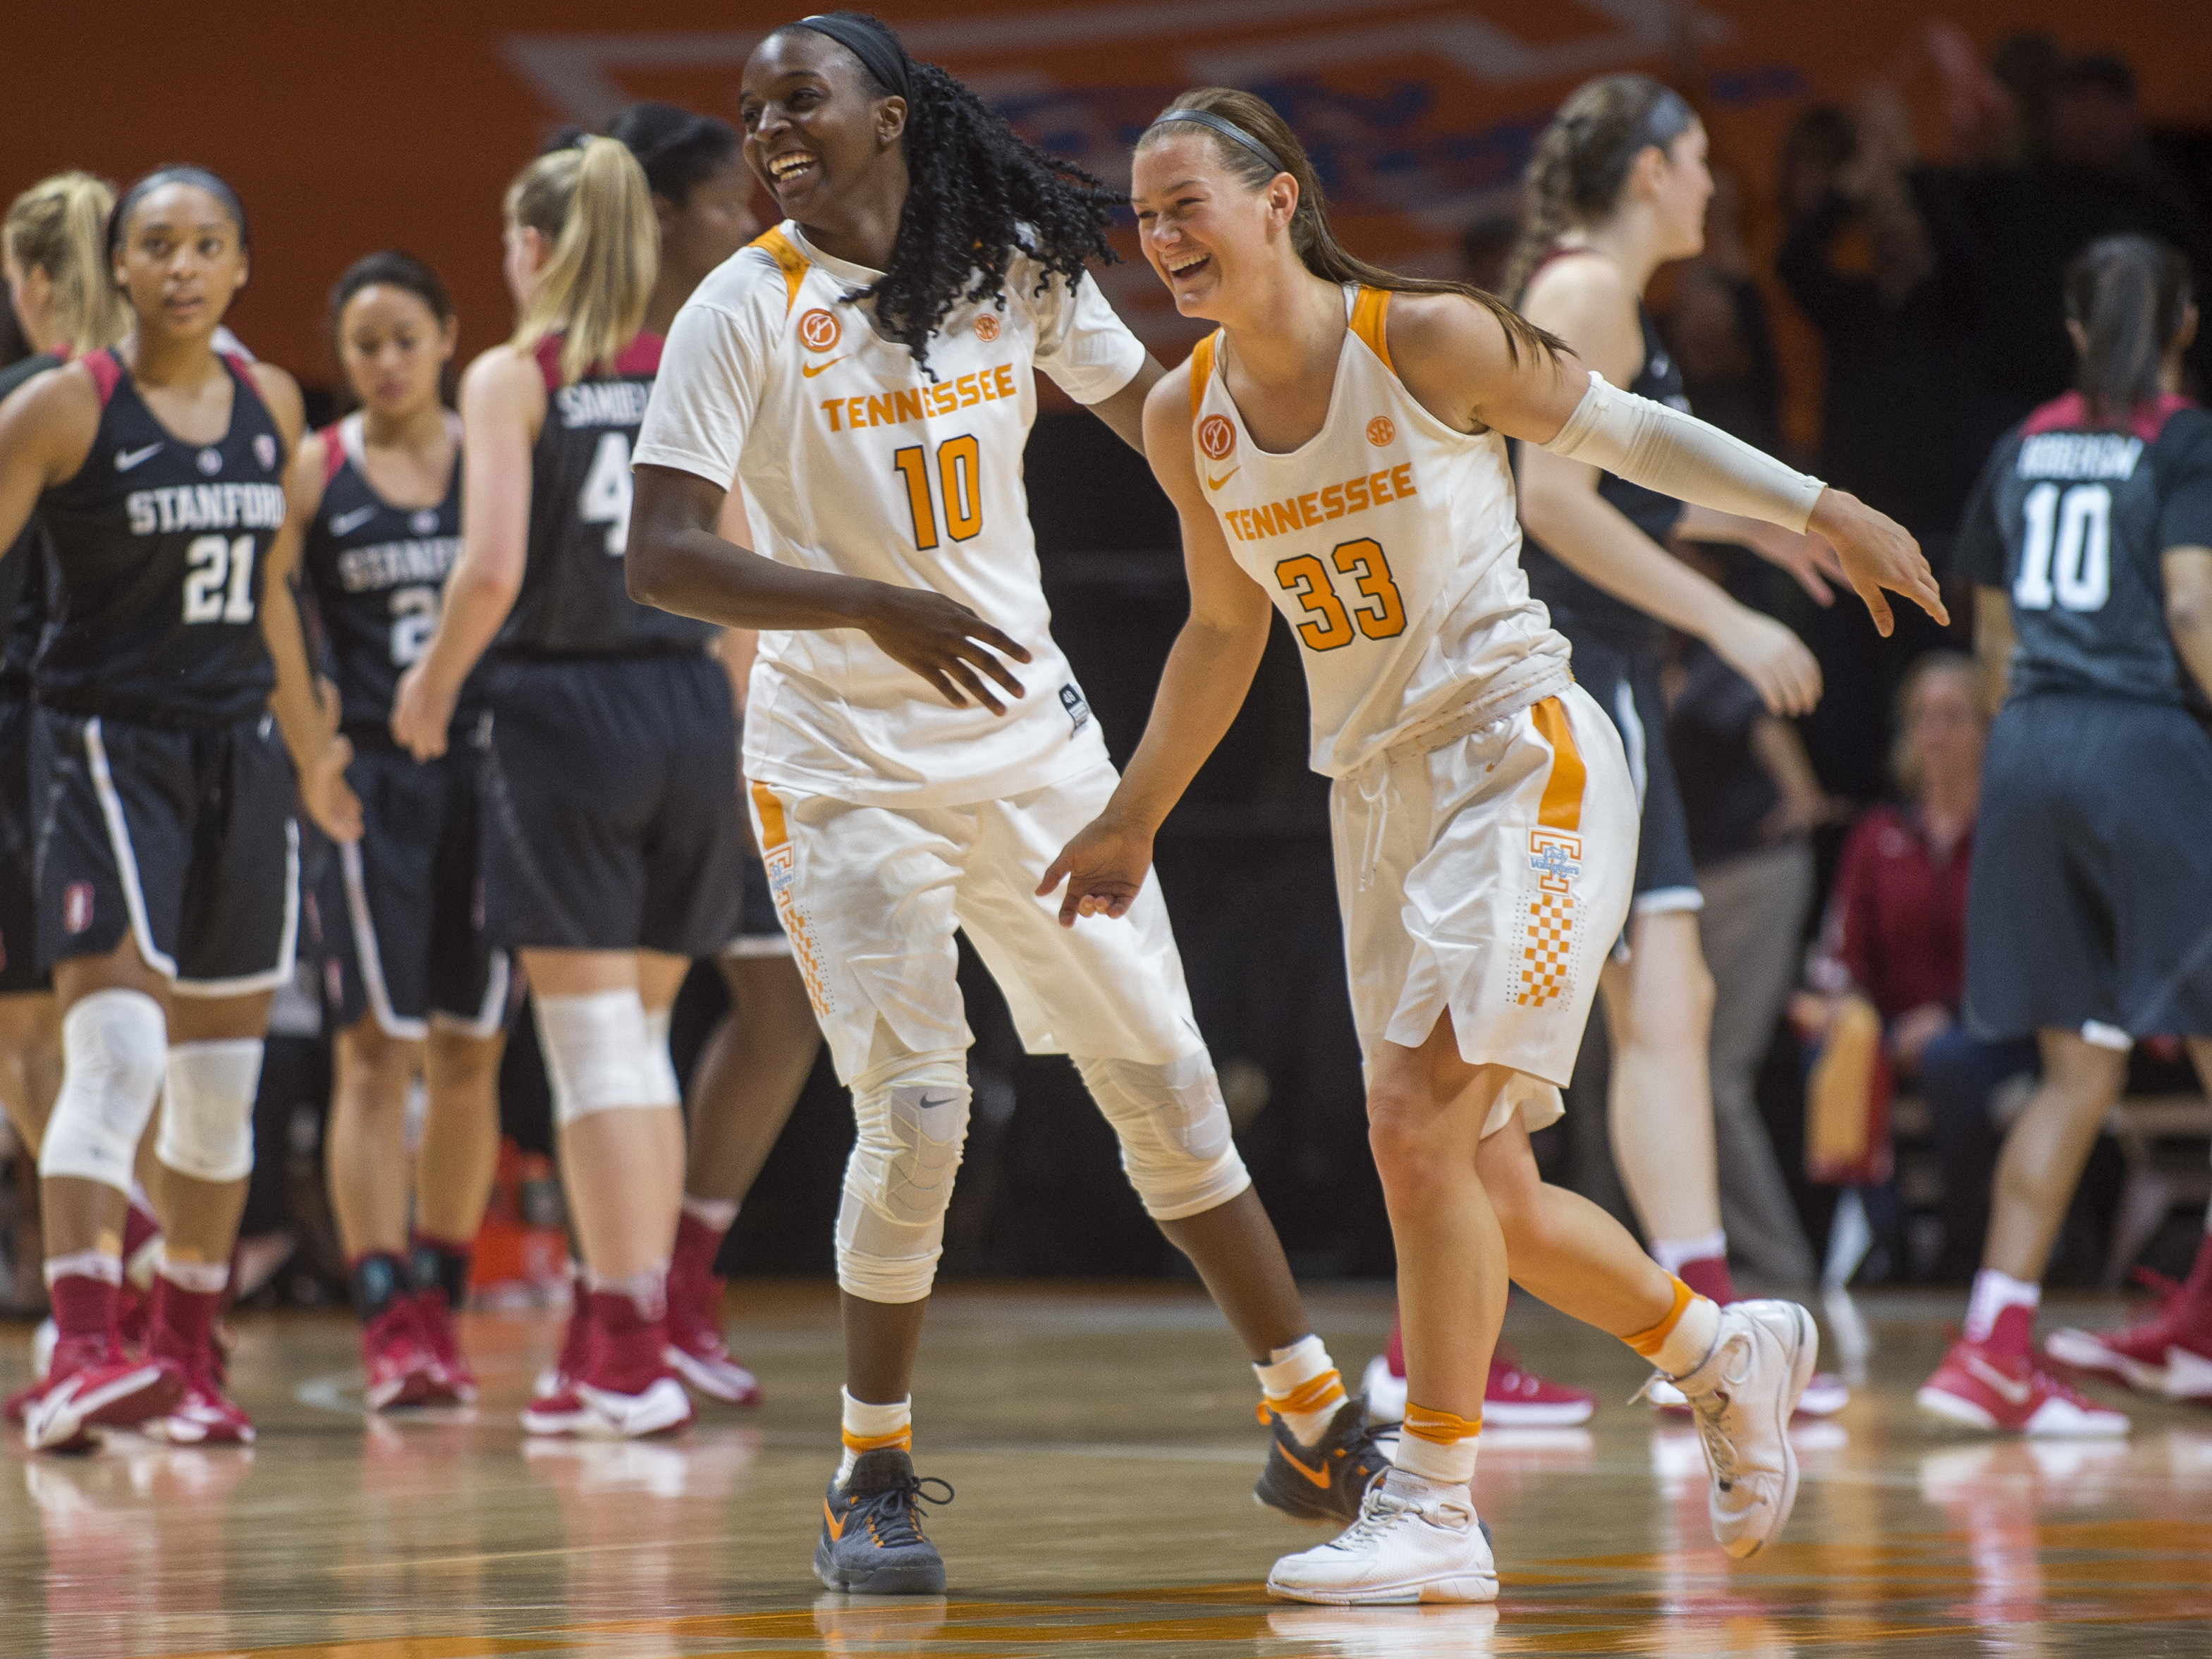 FILE - In this Dec. 18, 2016 file photo, Tennessee's Meme Jackson (10) and Alexa Middleton (33) celebrate their win against Stanford during an NCAA college basketball game in Knoxville, Tenn. After splitting its first eight games and falling out of the To